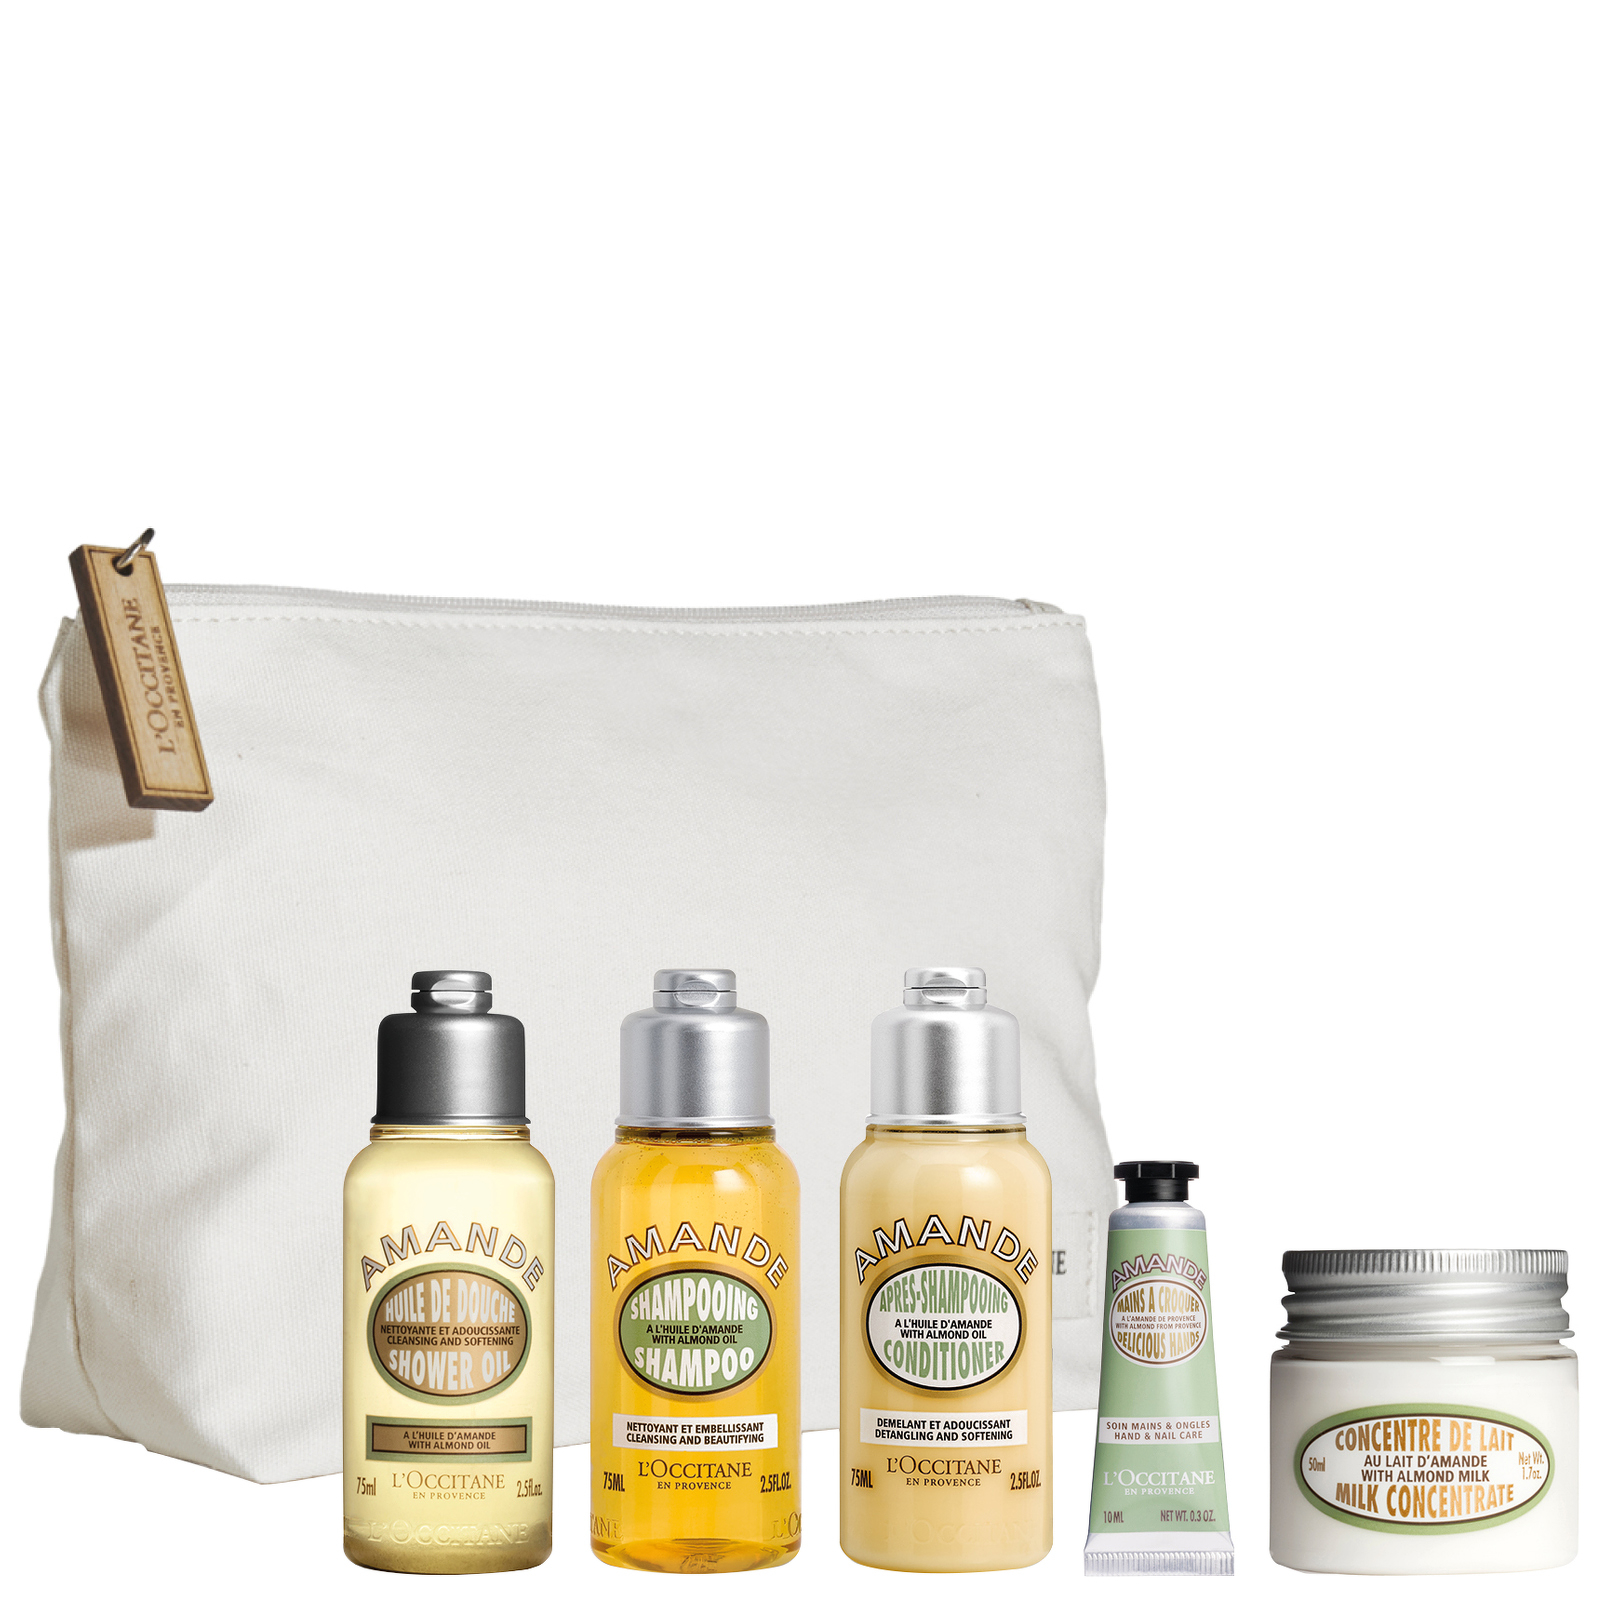 L'Occitane Almond Almond Collection